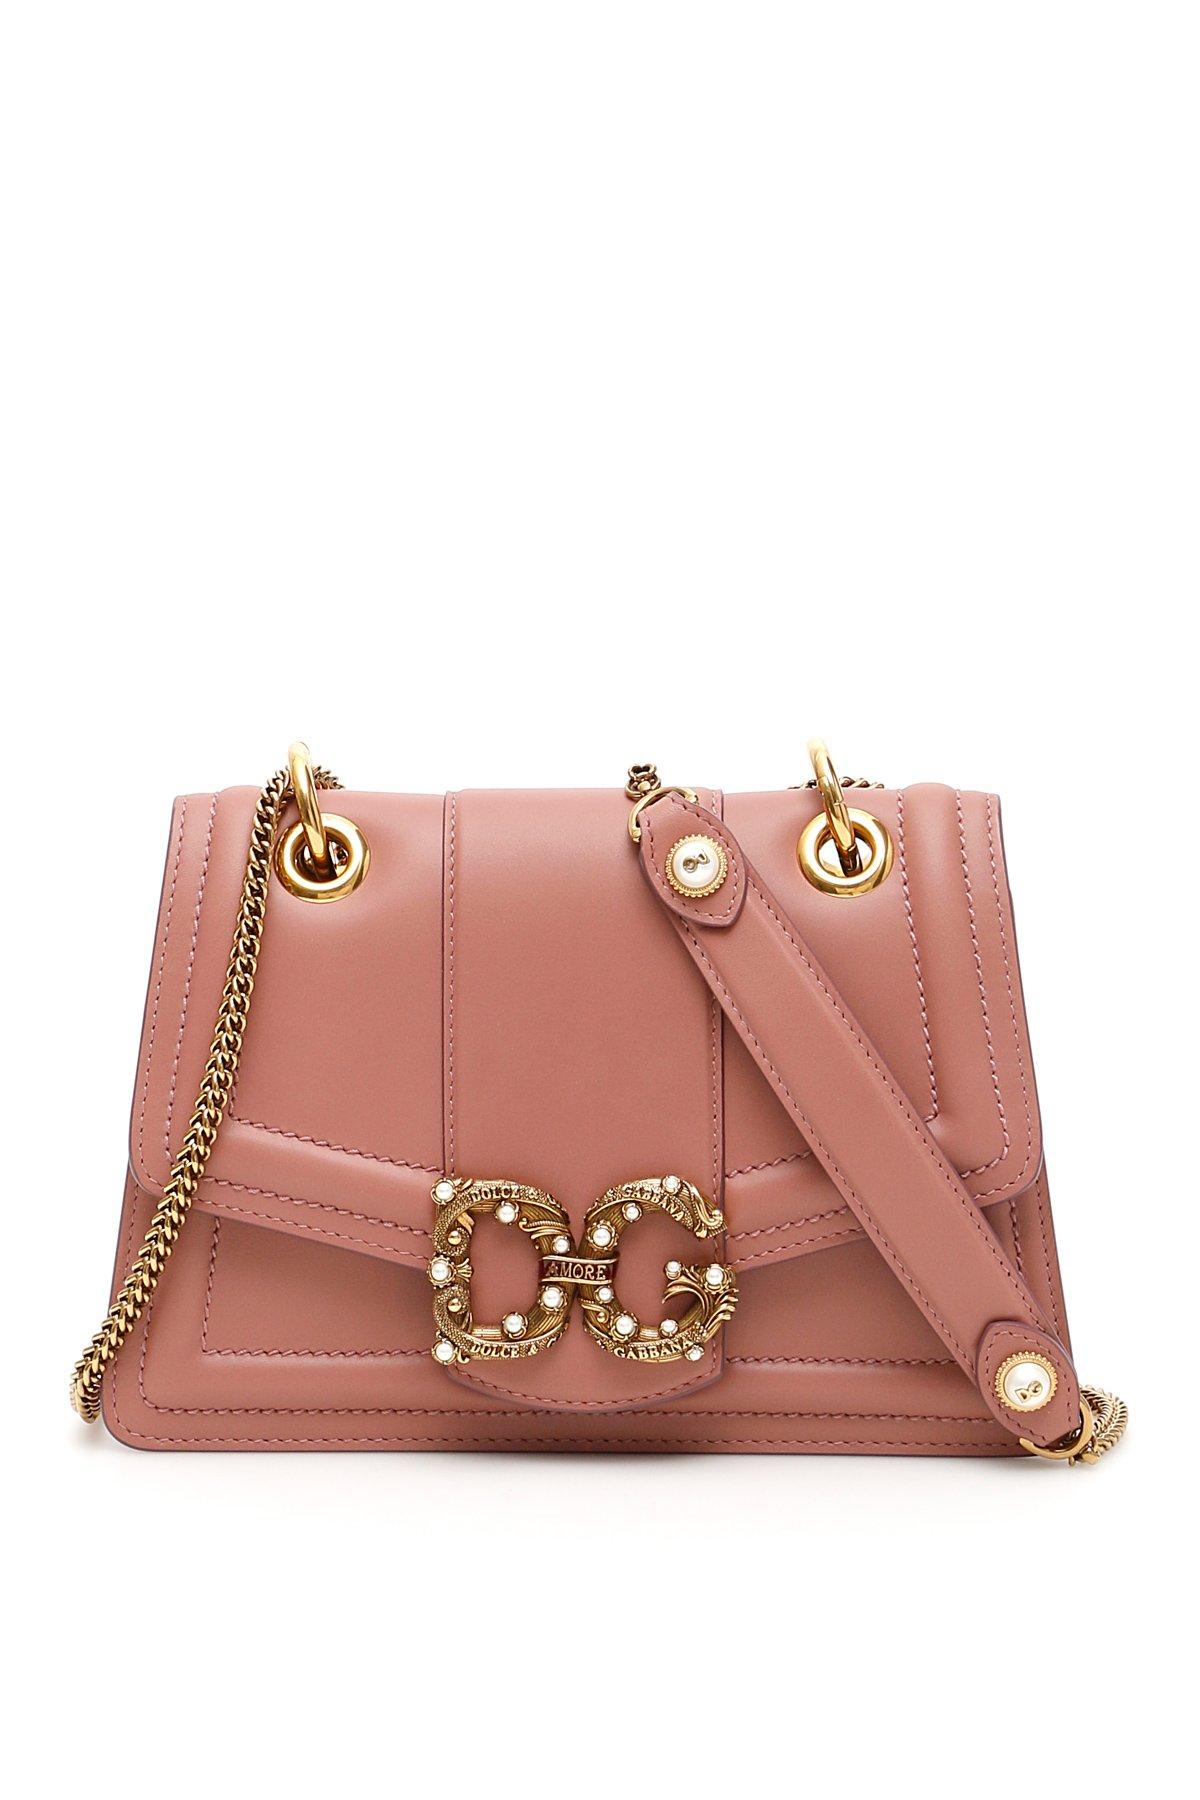 Dolce   Gabbana Logo Buckle Shoulder Bag in Pink - Lyst 02cf1ac7ede97